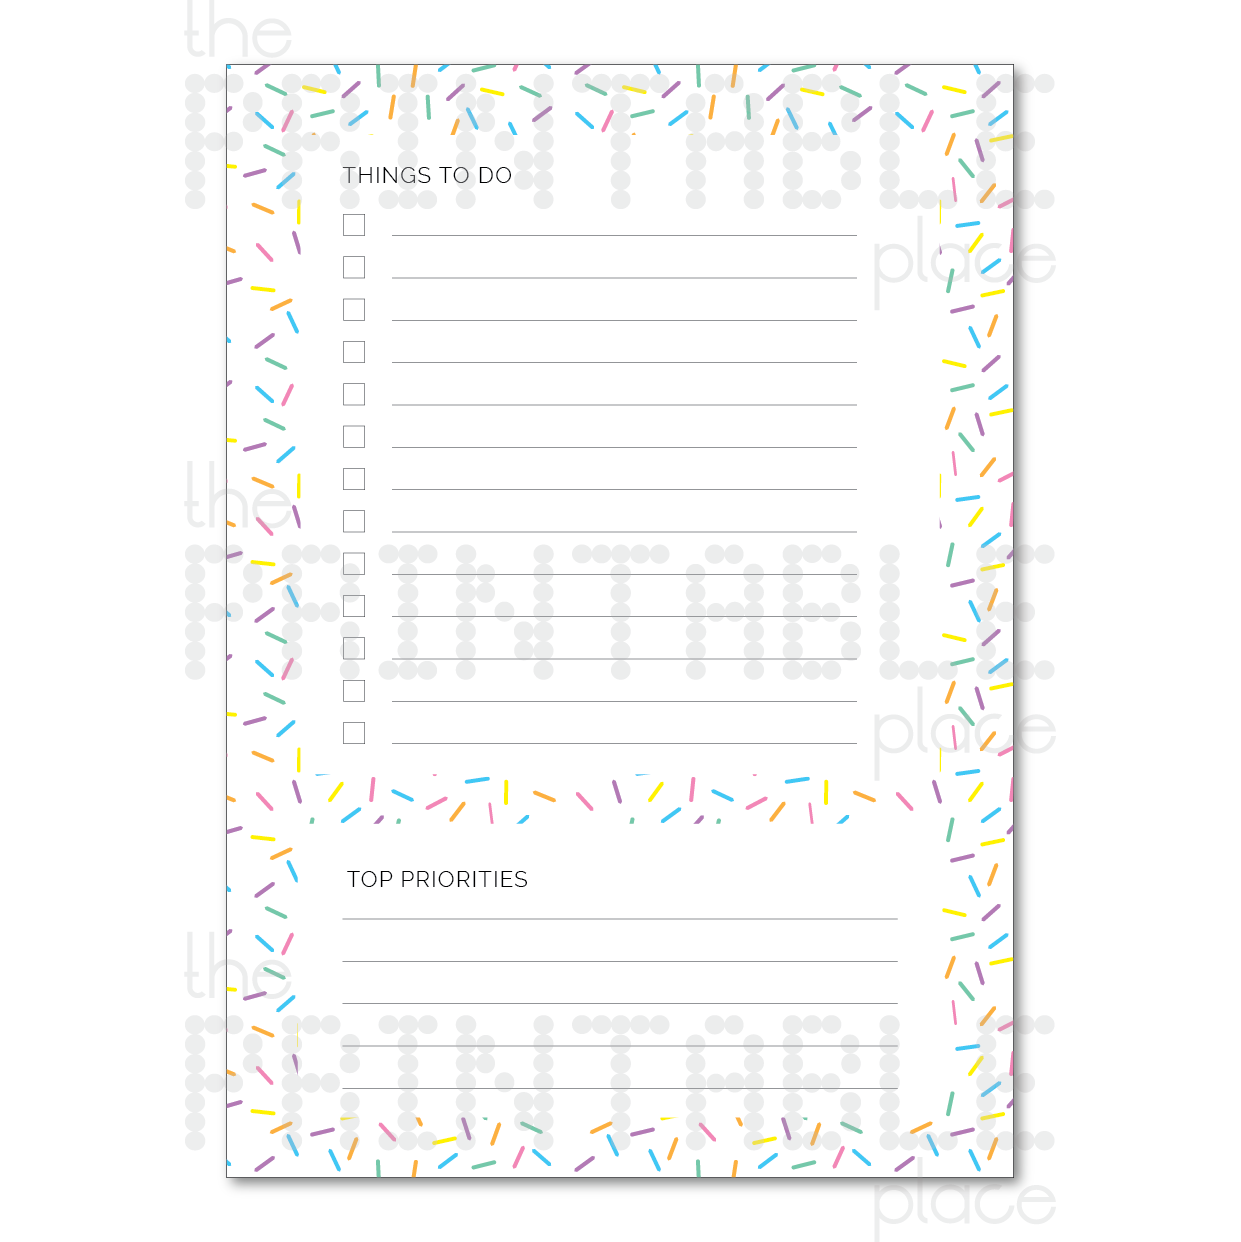 Sprinkle Themed Planner Download To Do List - The Printable Place